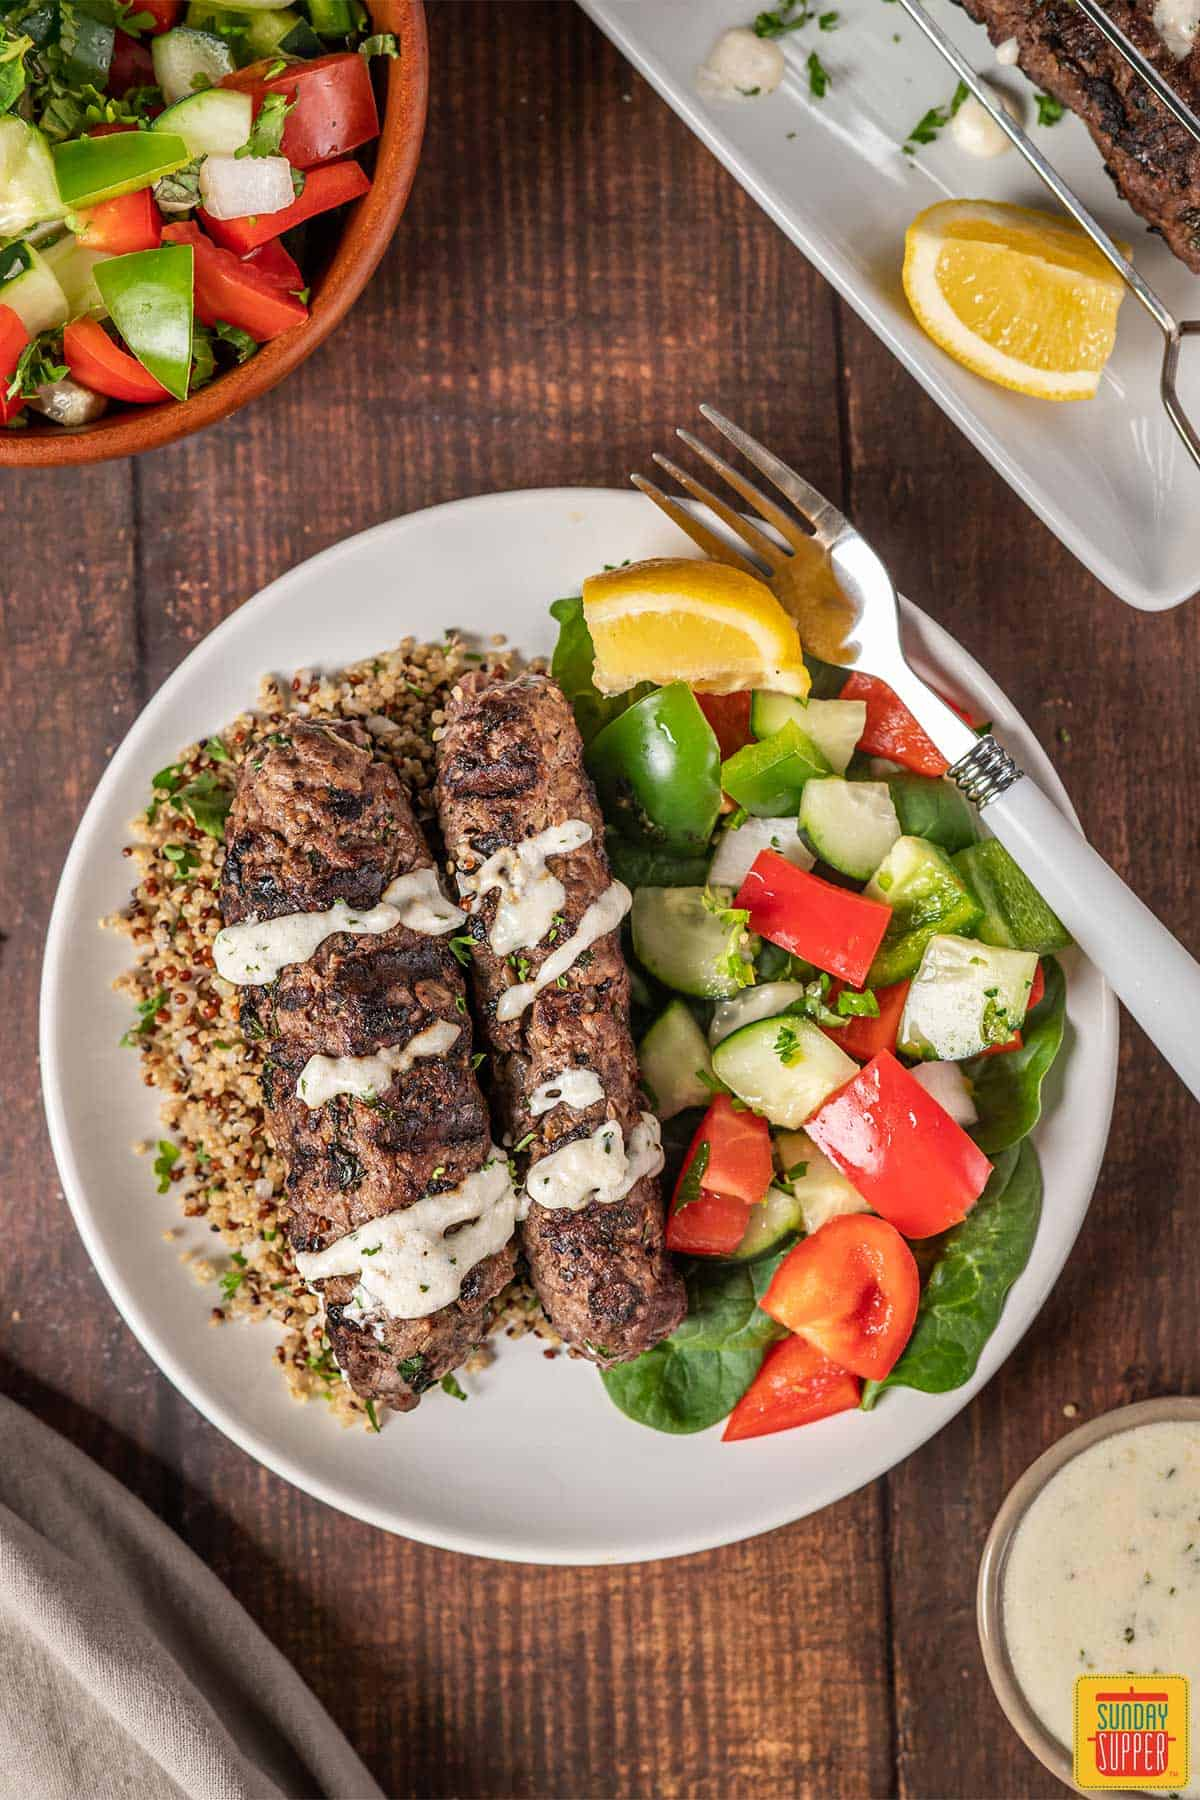 Lebanese beef kofta on a plate with couscous and cucumber salad